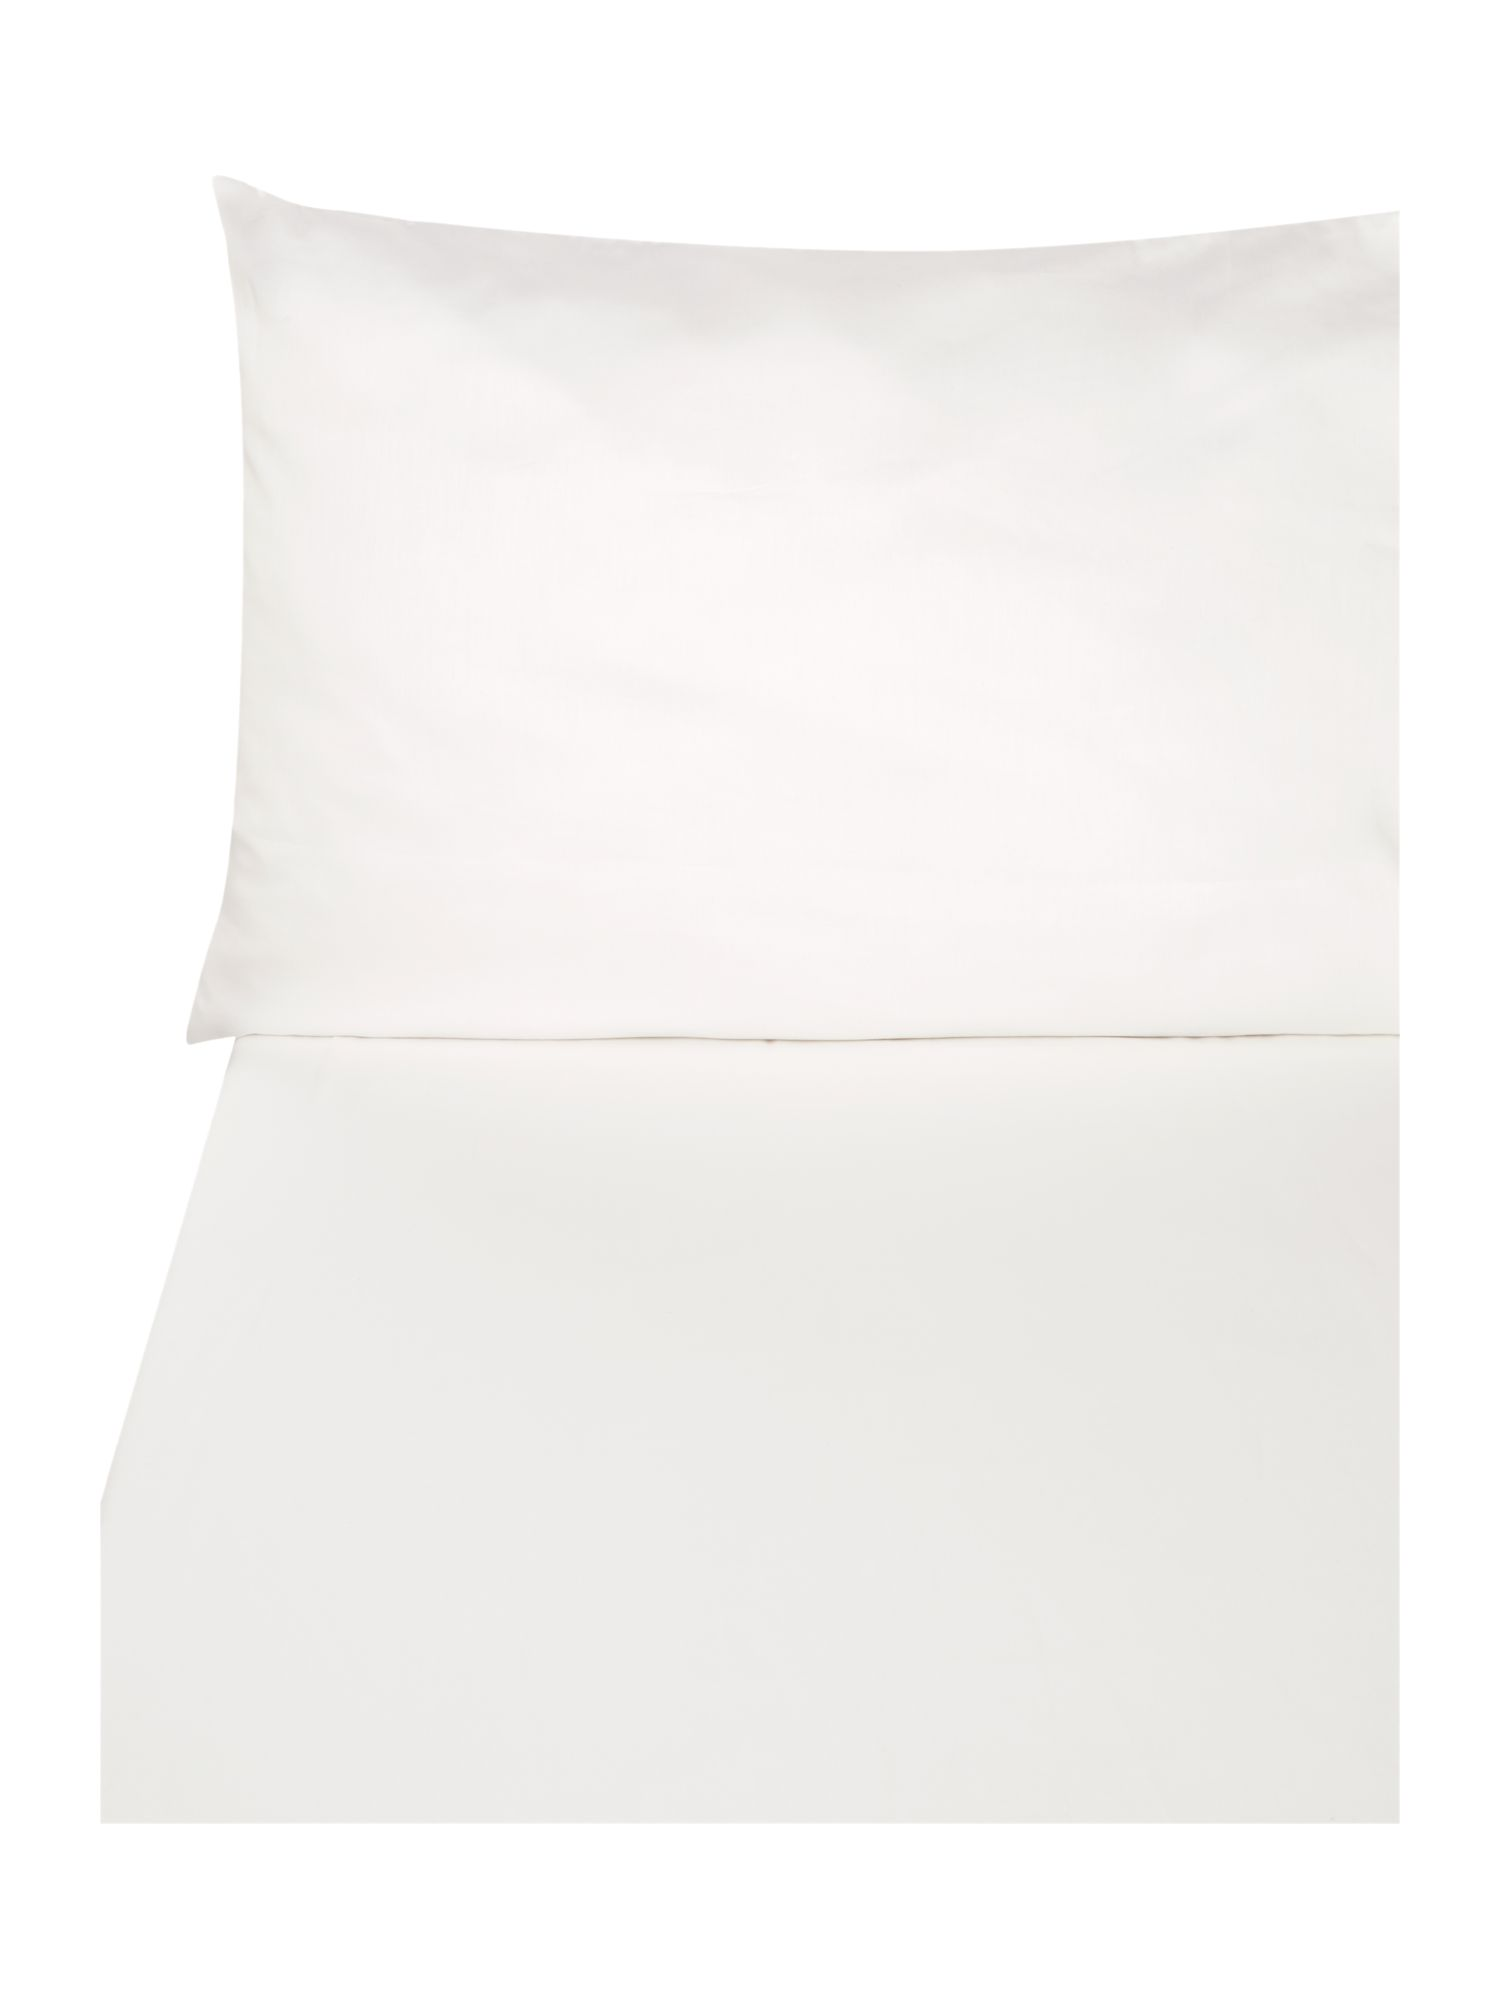 300 thread count off white housewife pillowcases